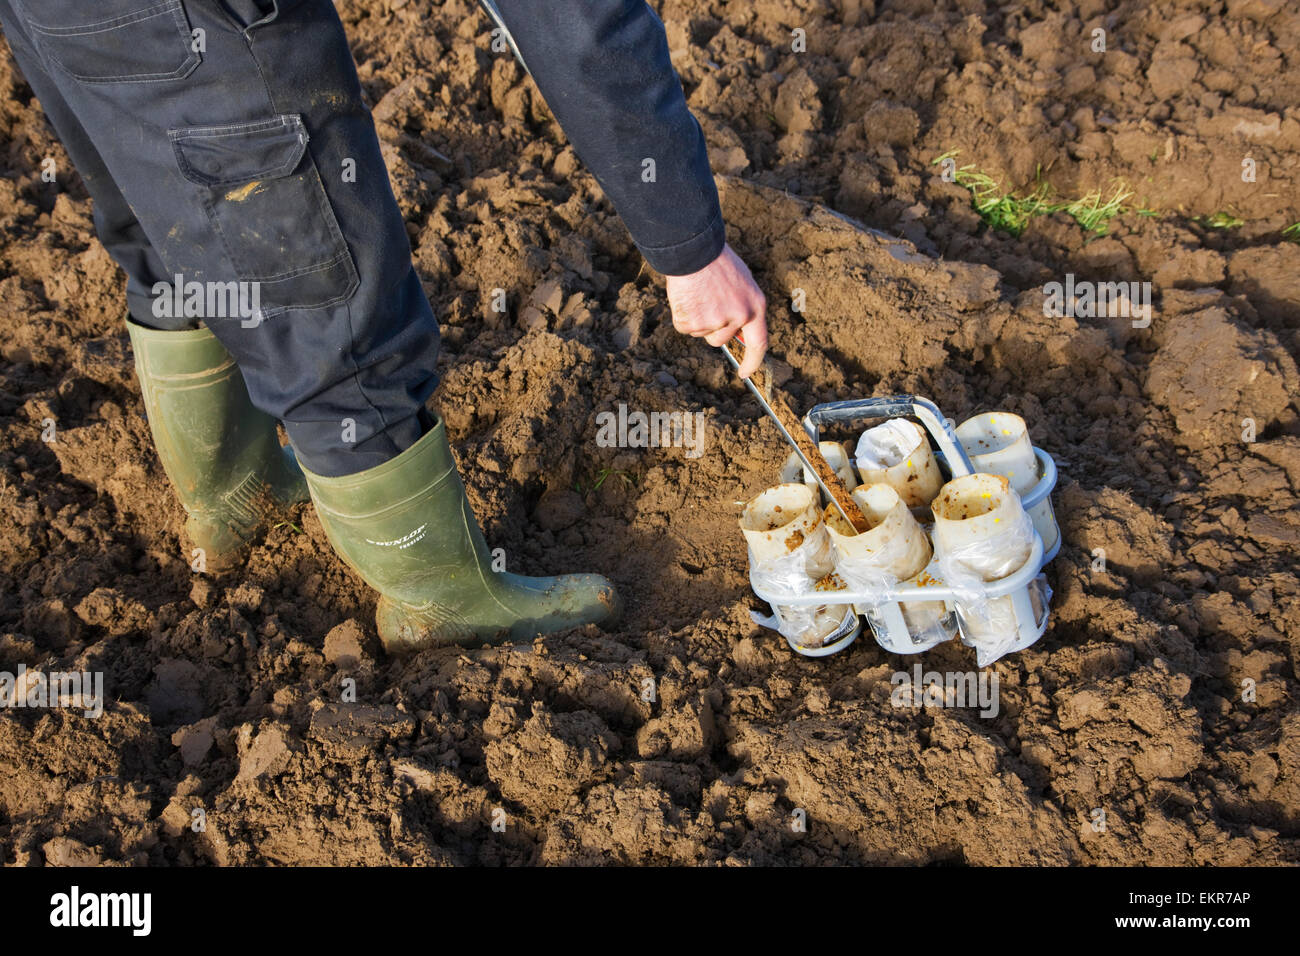 Researcher carrying out soil test by taking manual earth core samples from field with metal corer Stock Photo